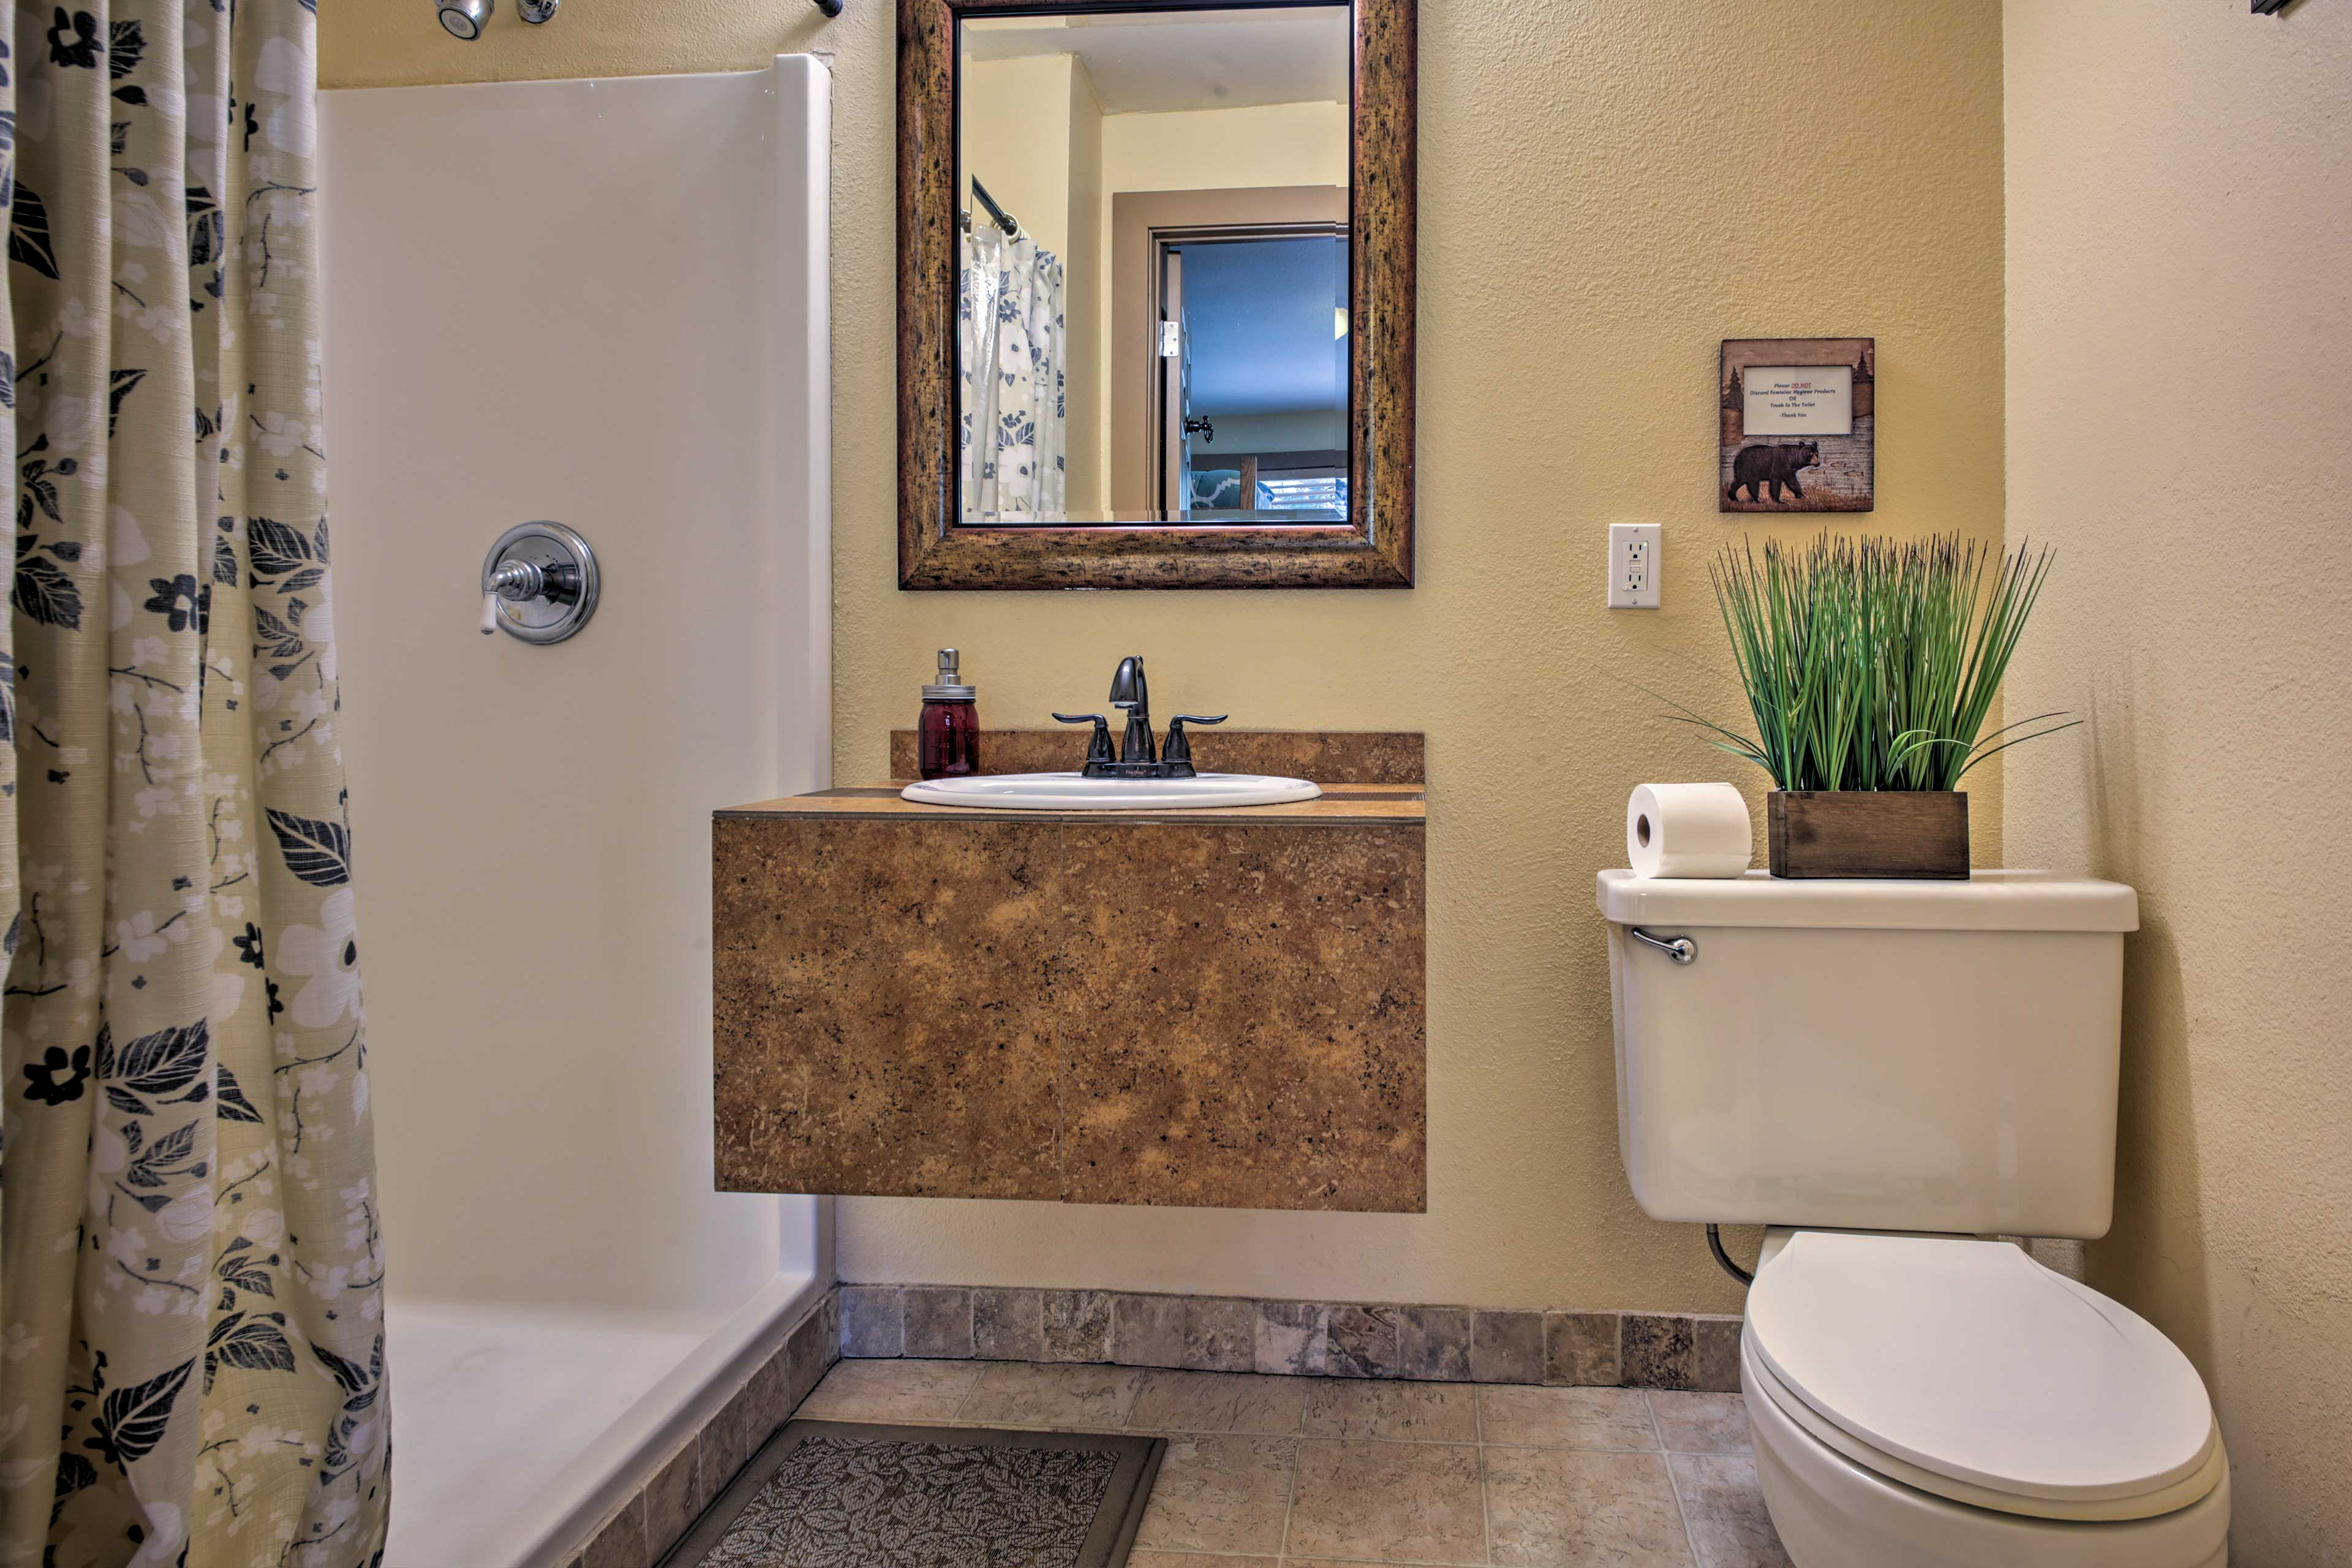 An en-suite bathroom makes it easy to rinse off before bed.